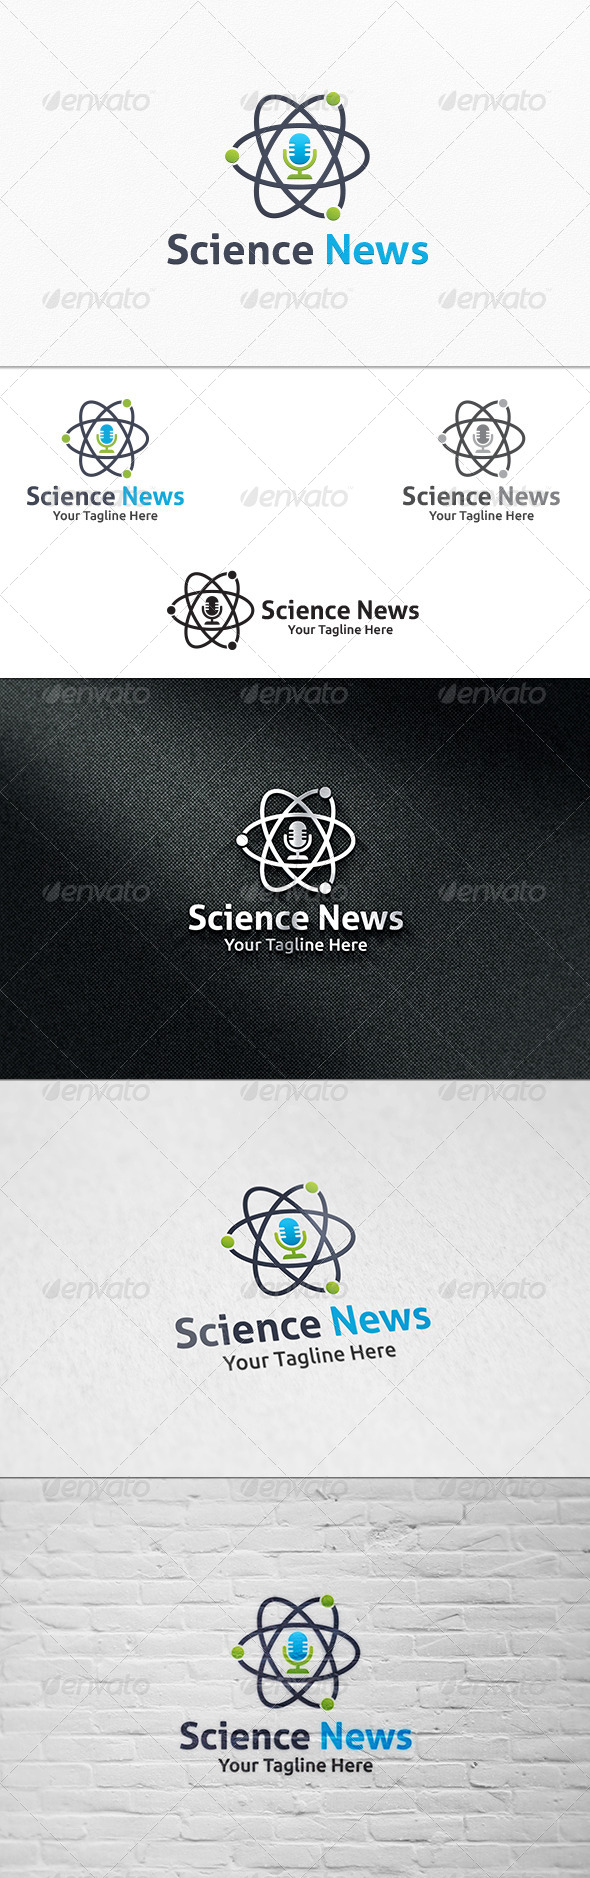 GraphicRiver Science News Logo Template 8142481